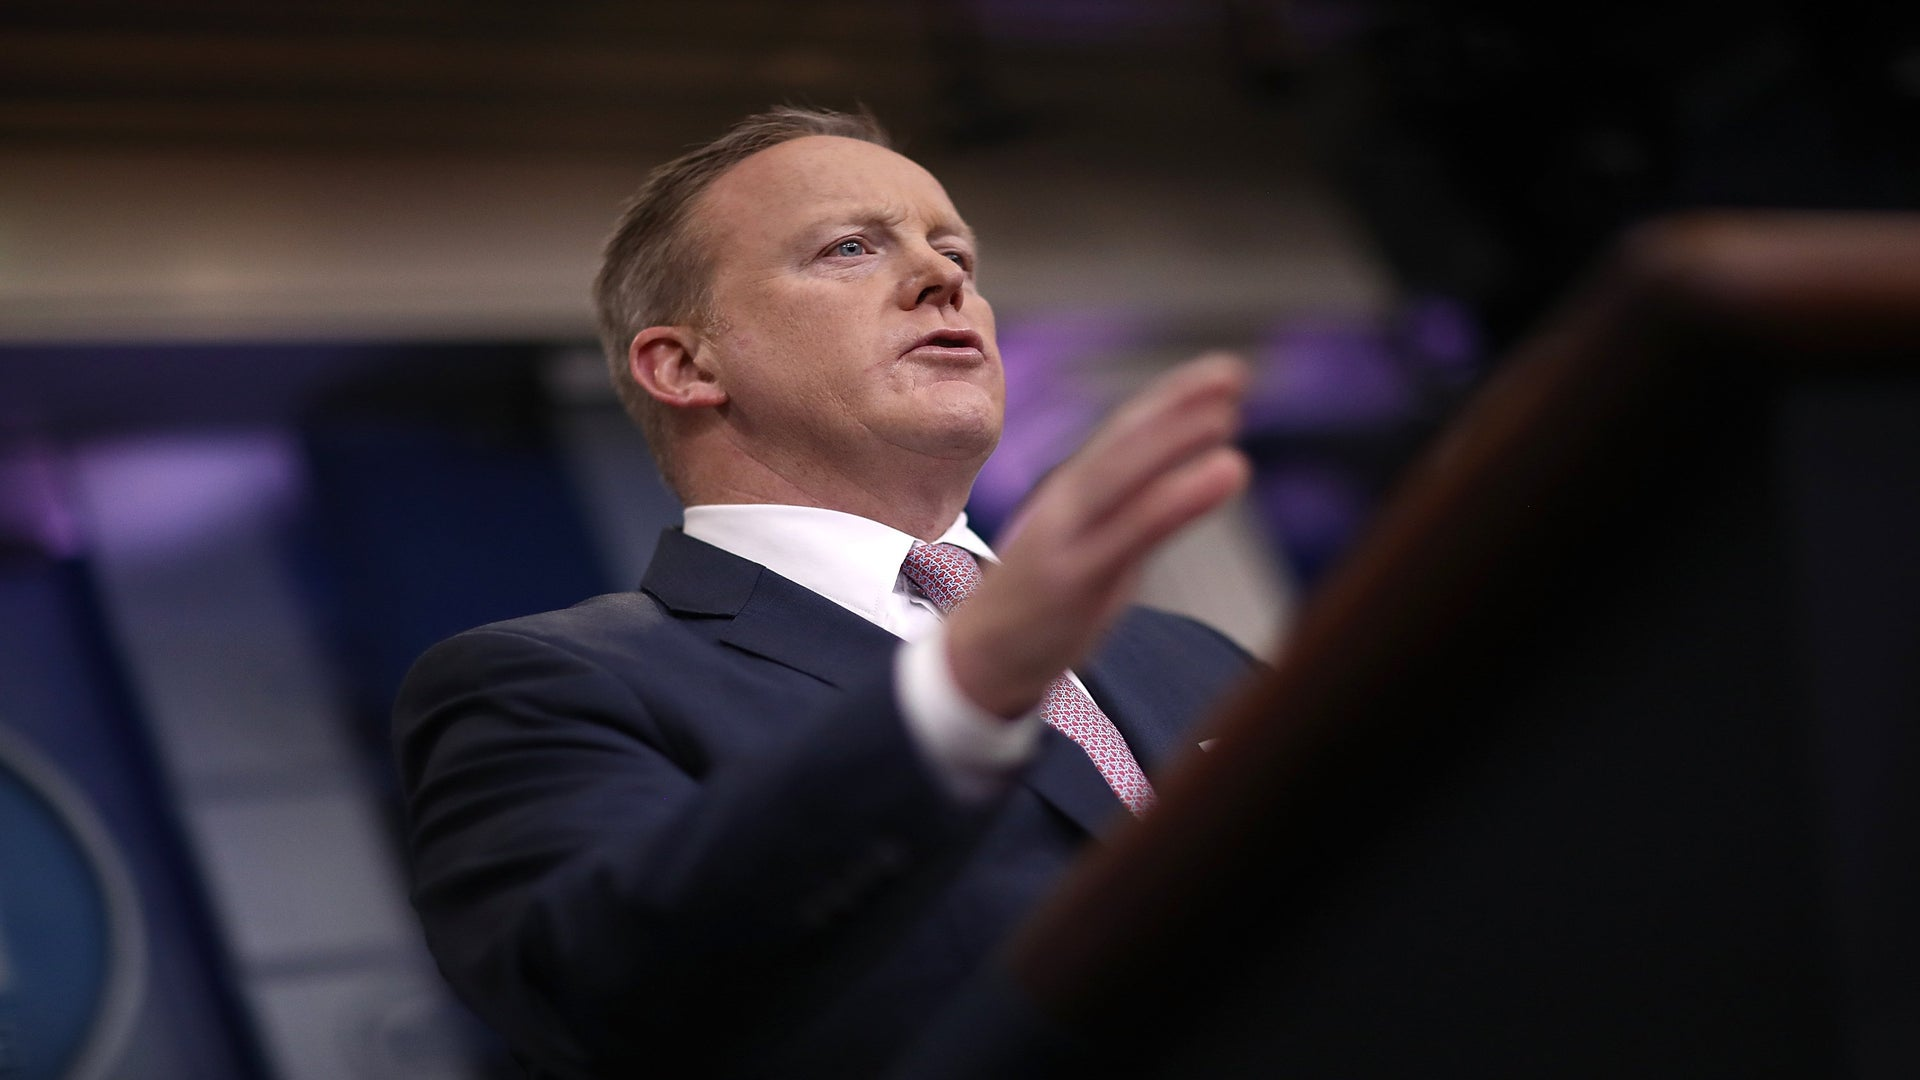 Sean Spicer To Move Behind The Scenes At White House